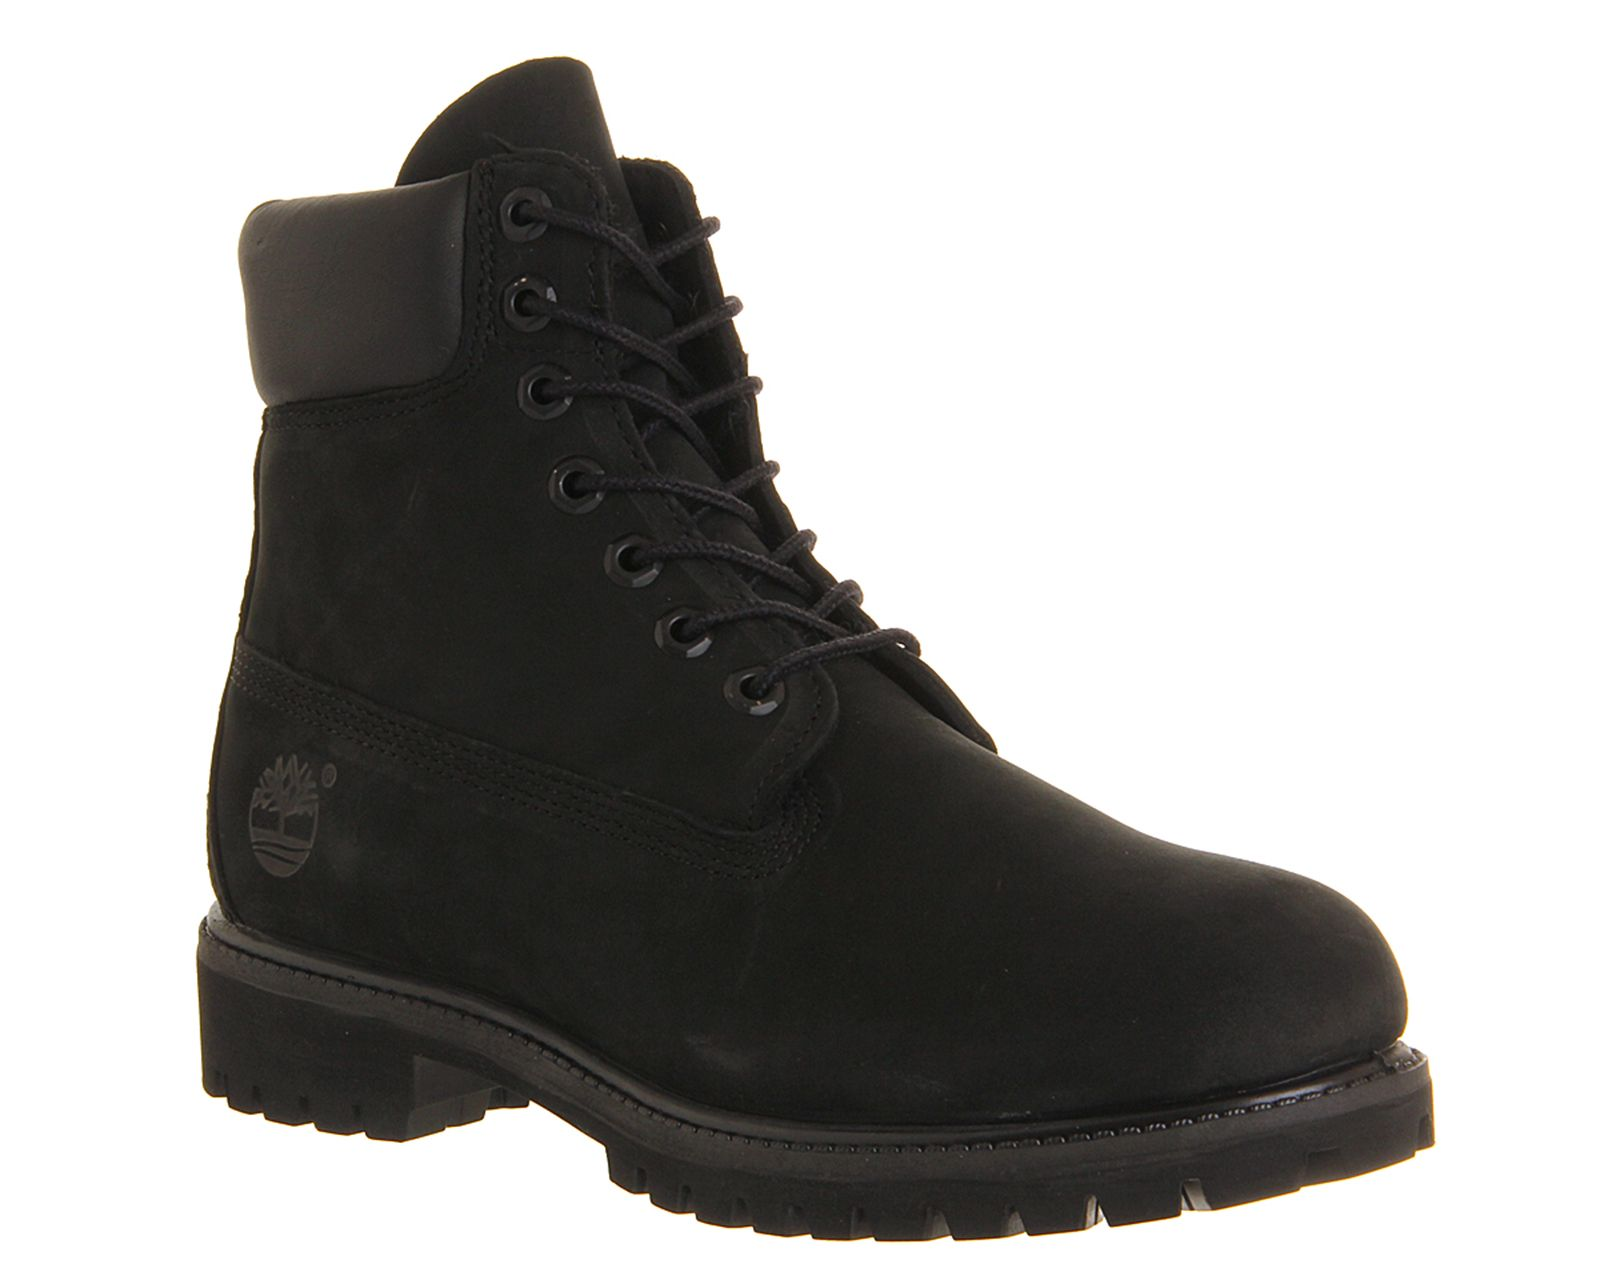 Timberland 6 In Buck boots Black Nubuck Boots | Timberland